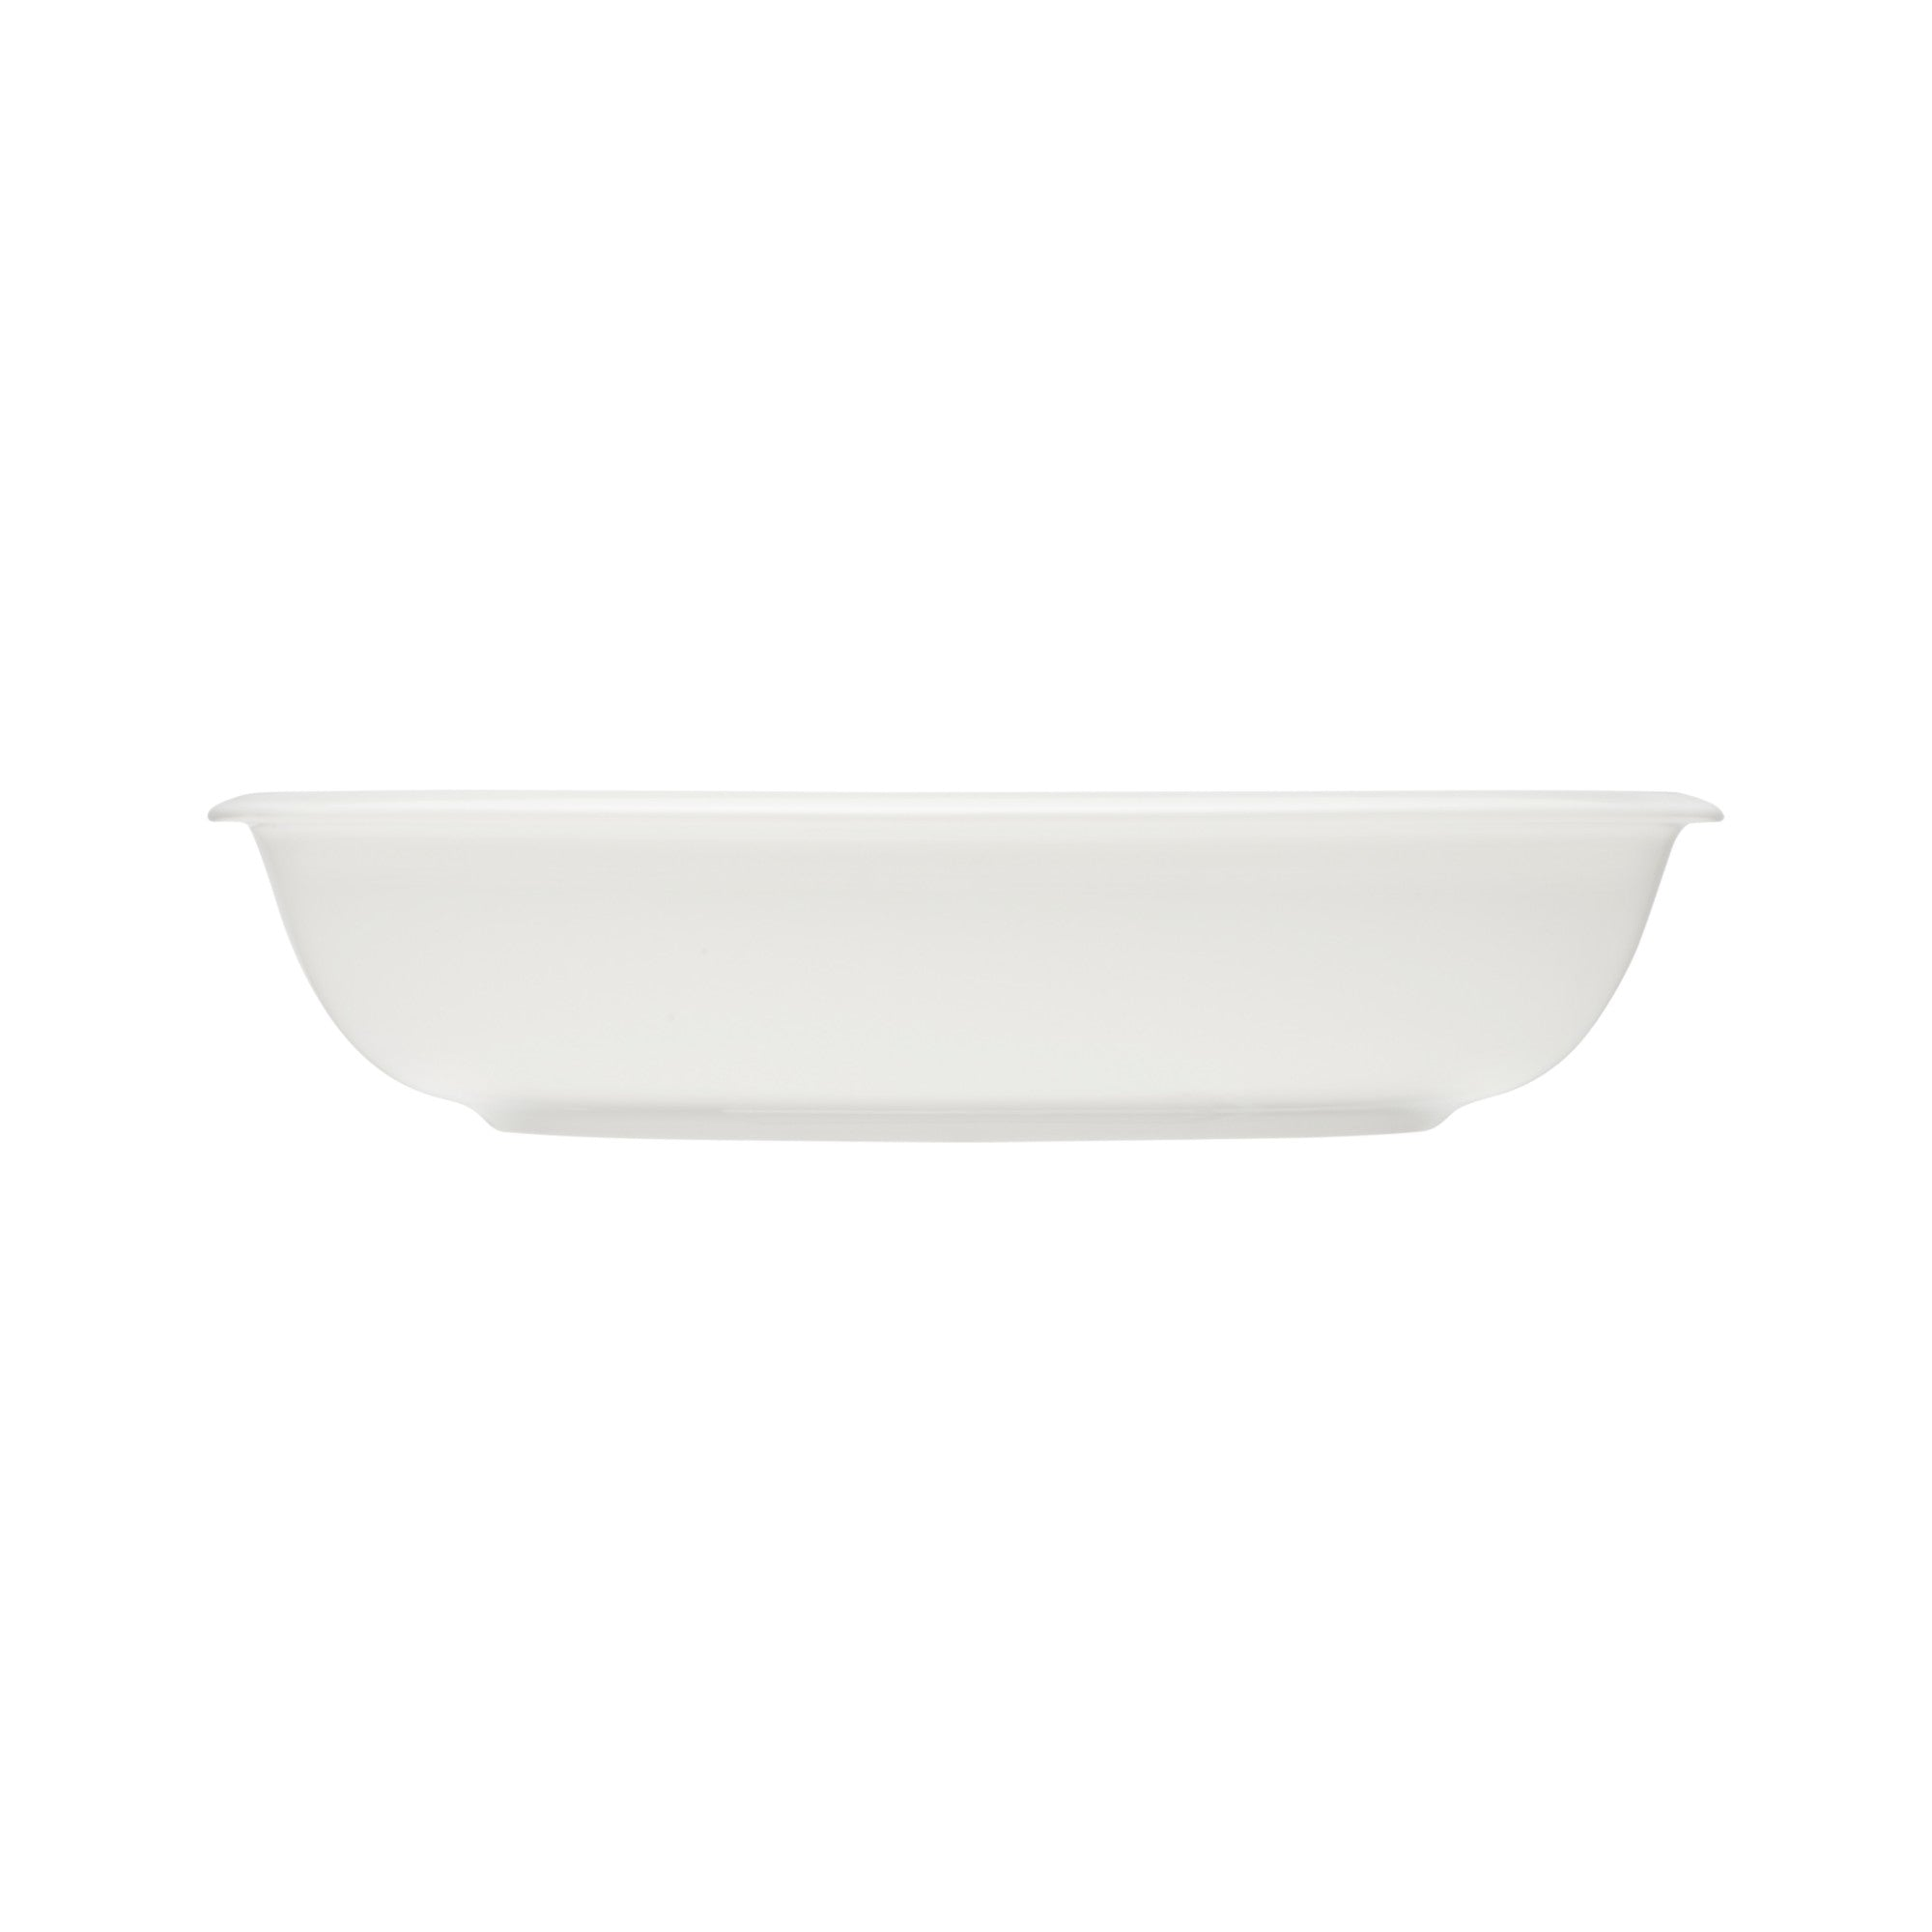 Raami Serving bowl oval 1.75qt